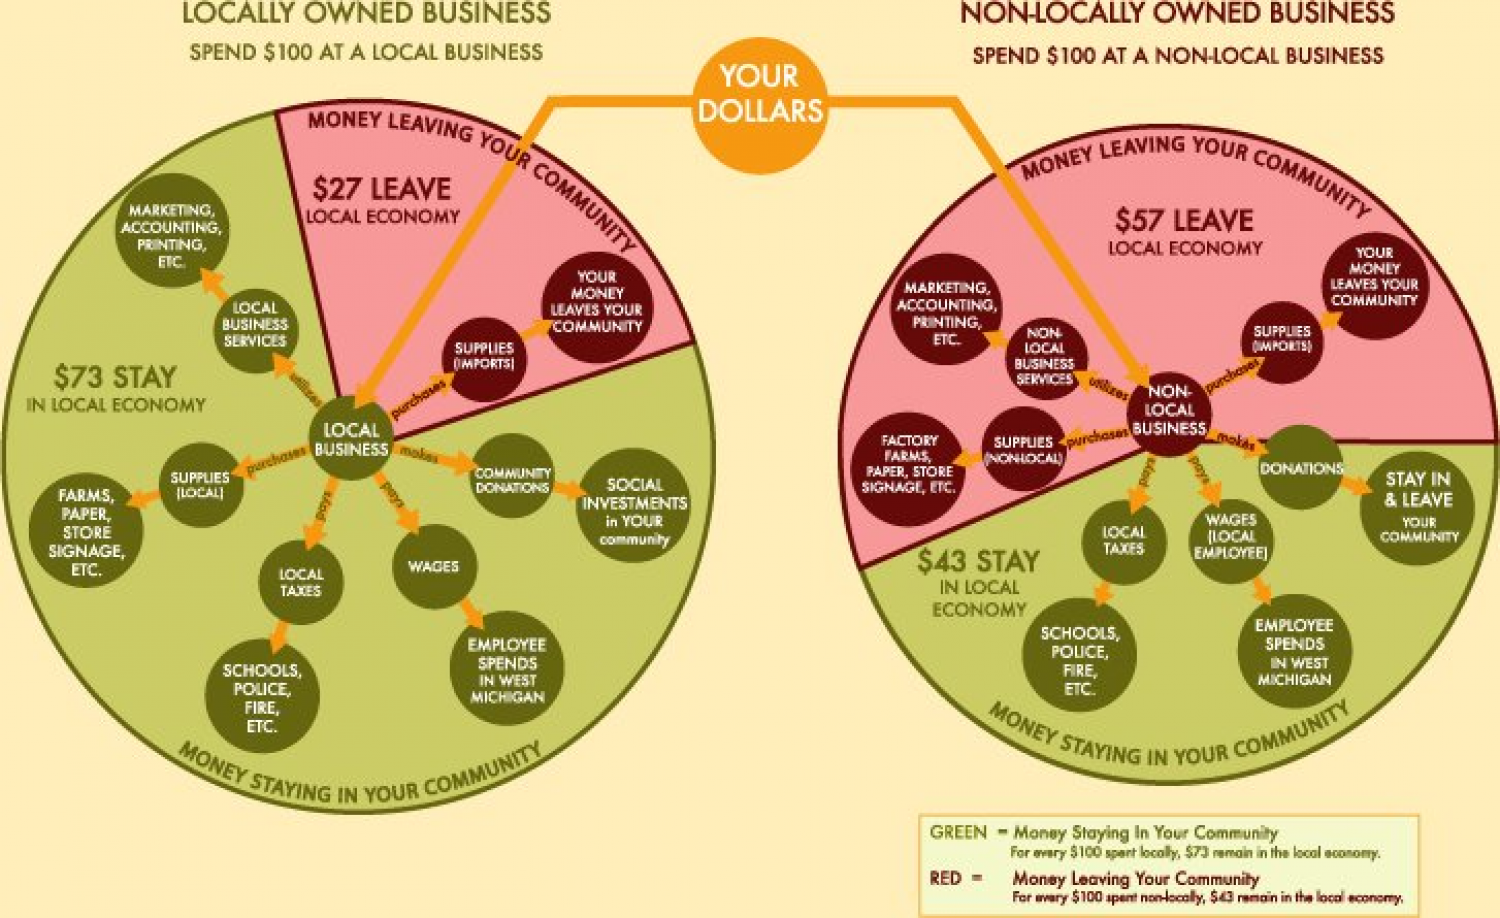 Locally Owned Business vs. Non-Locally Owned Business Spending Infographic